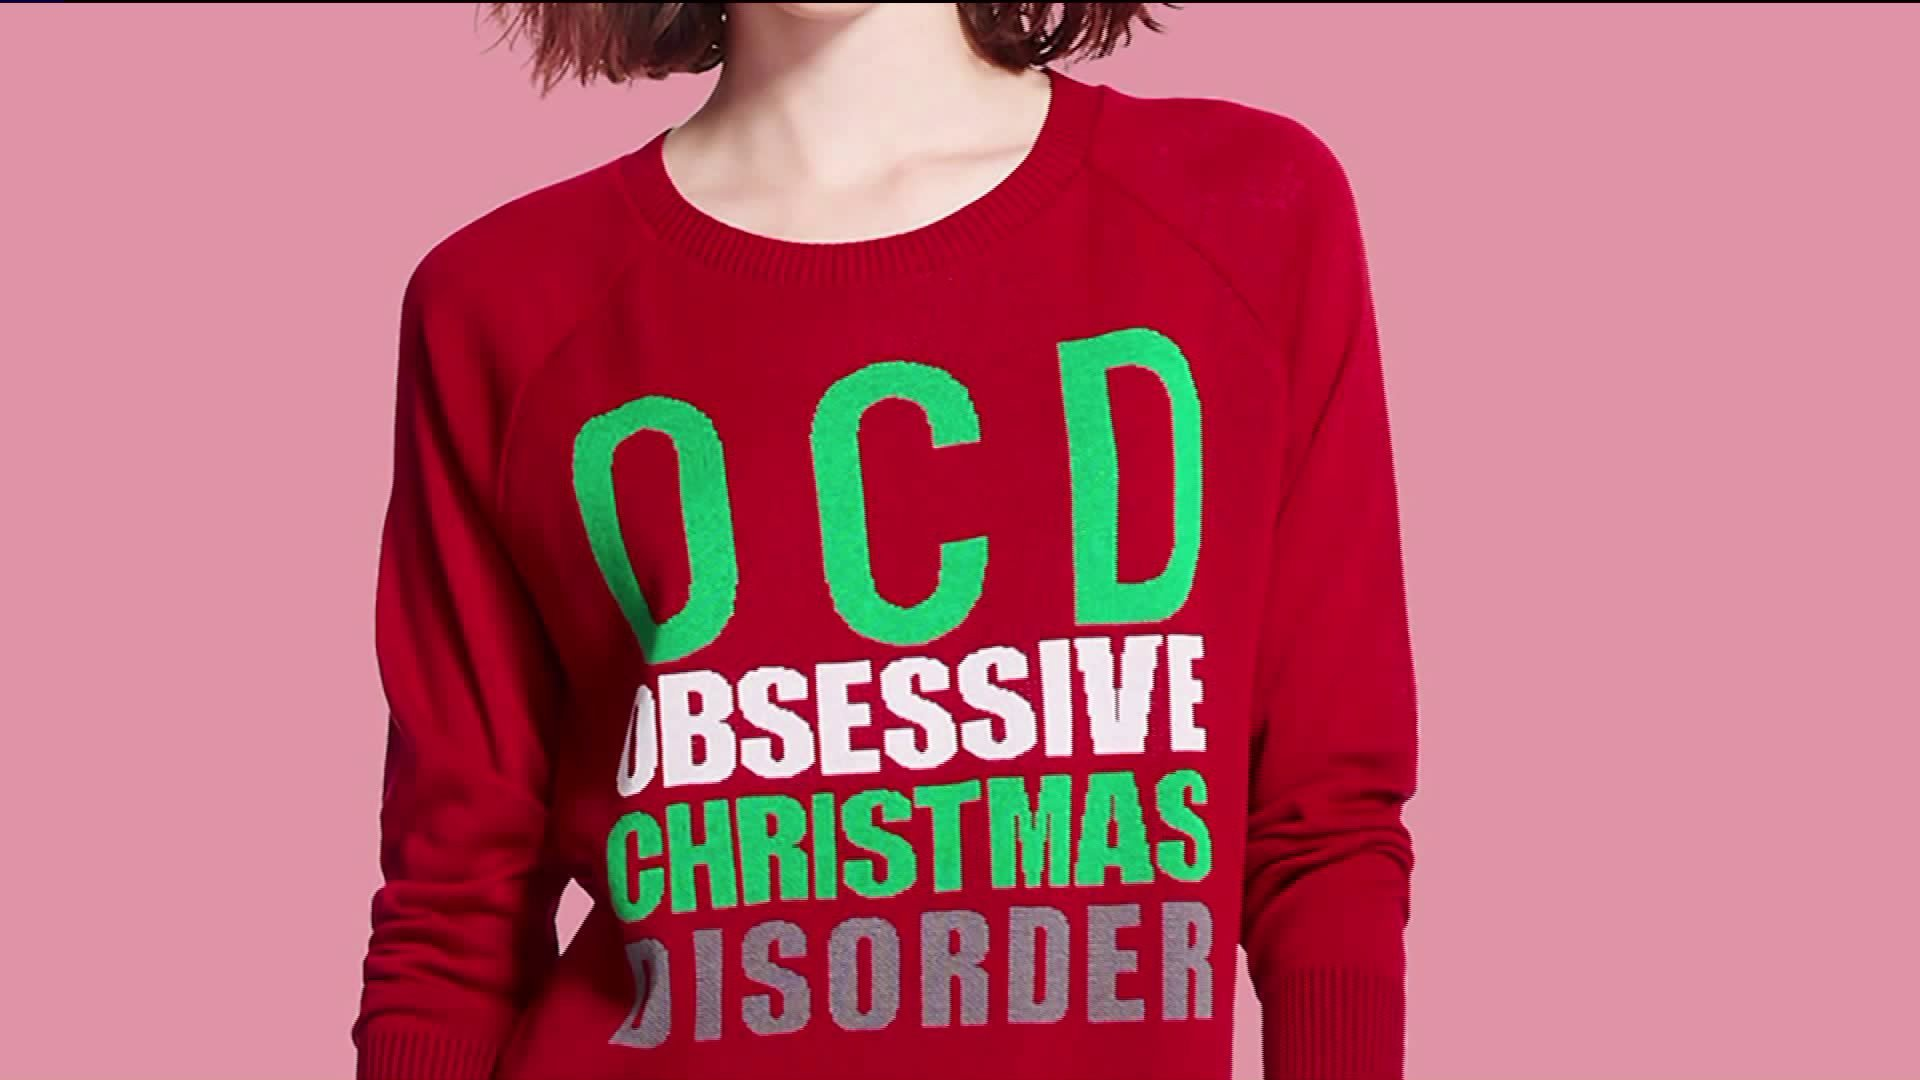 What Is Your Christmas OCD Level On A Scale Of 1 To 5? Take this quiz and find out today!